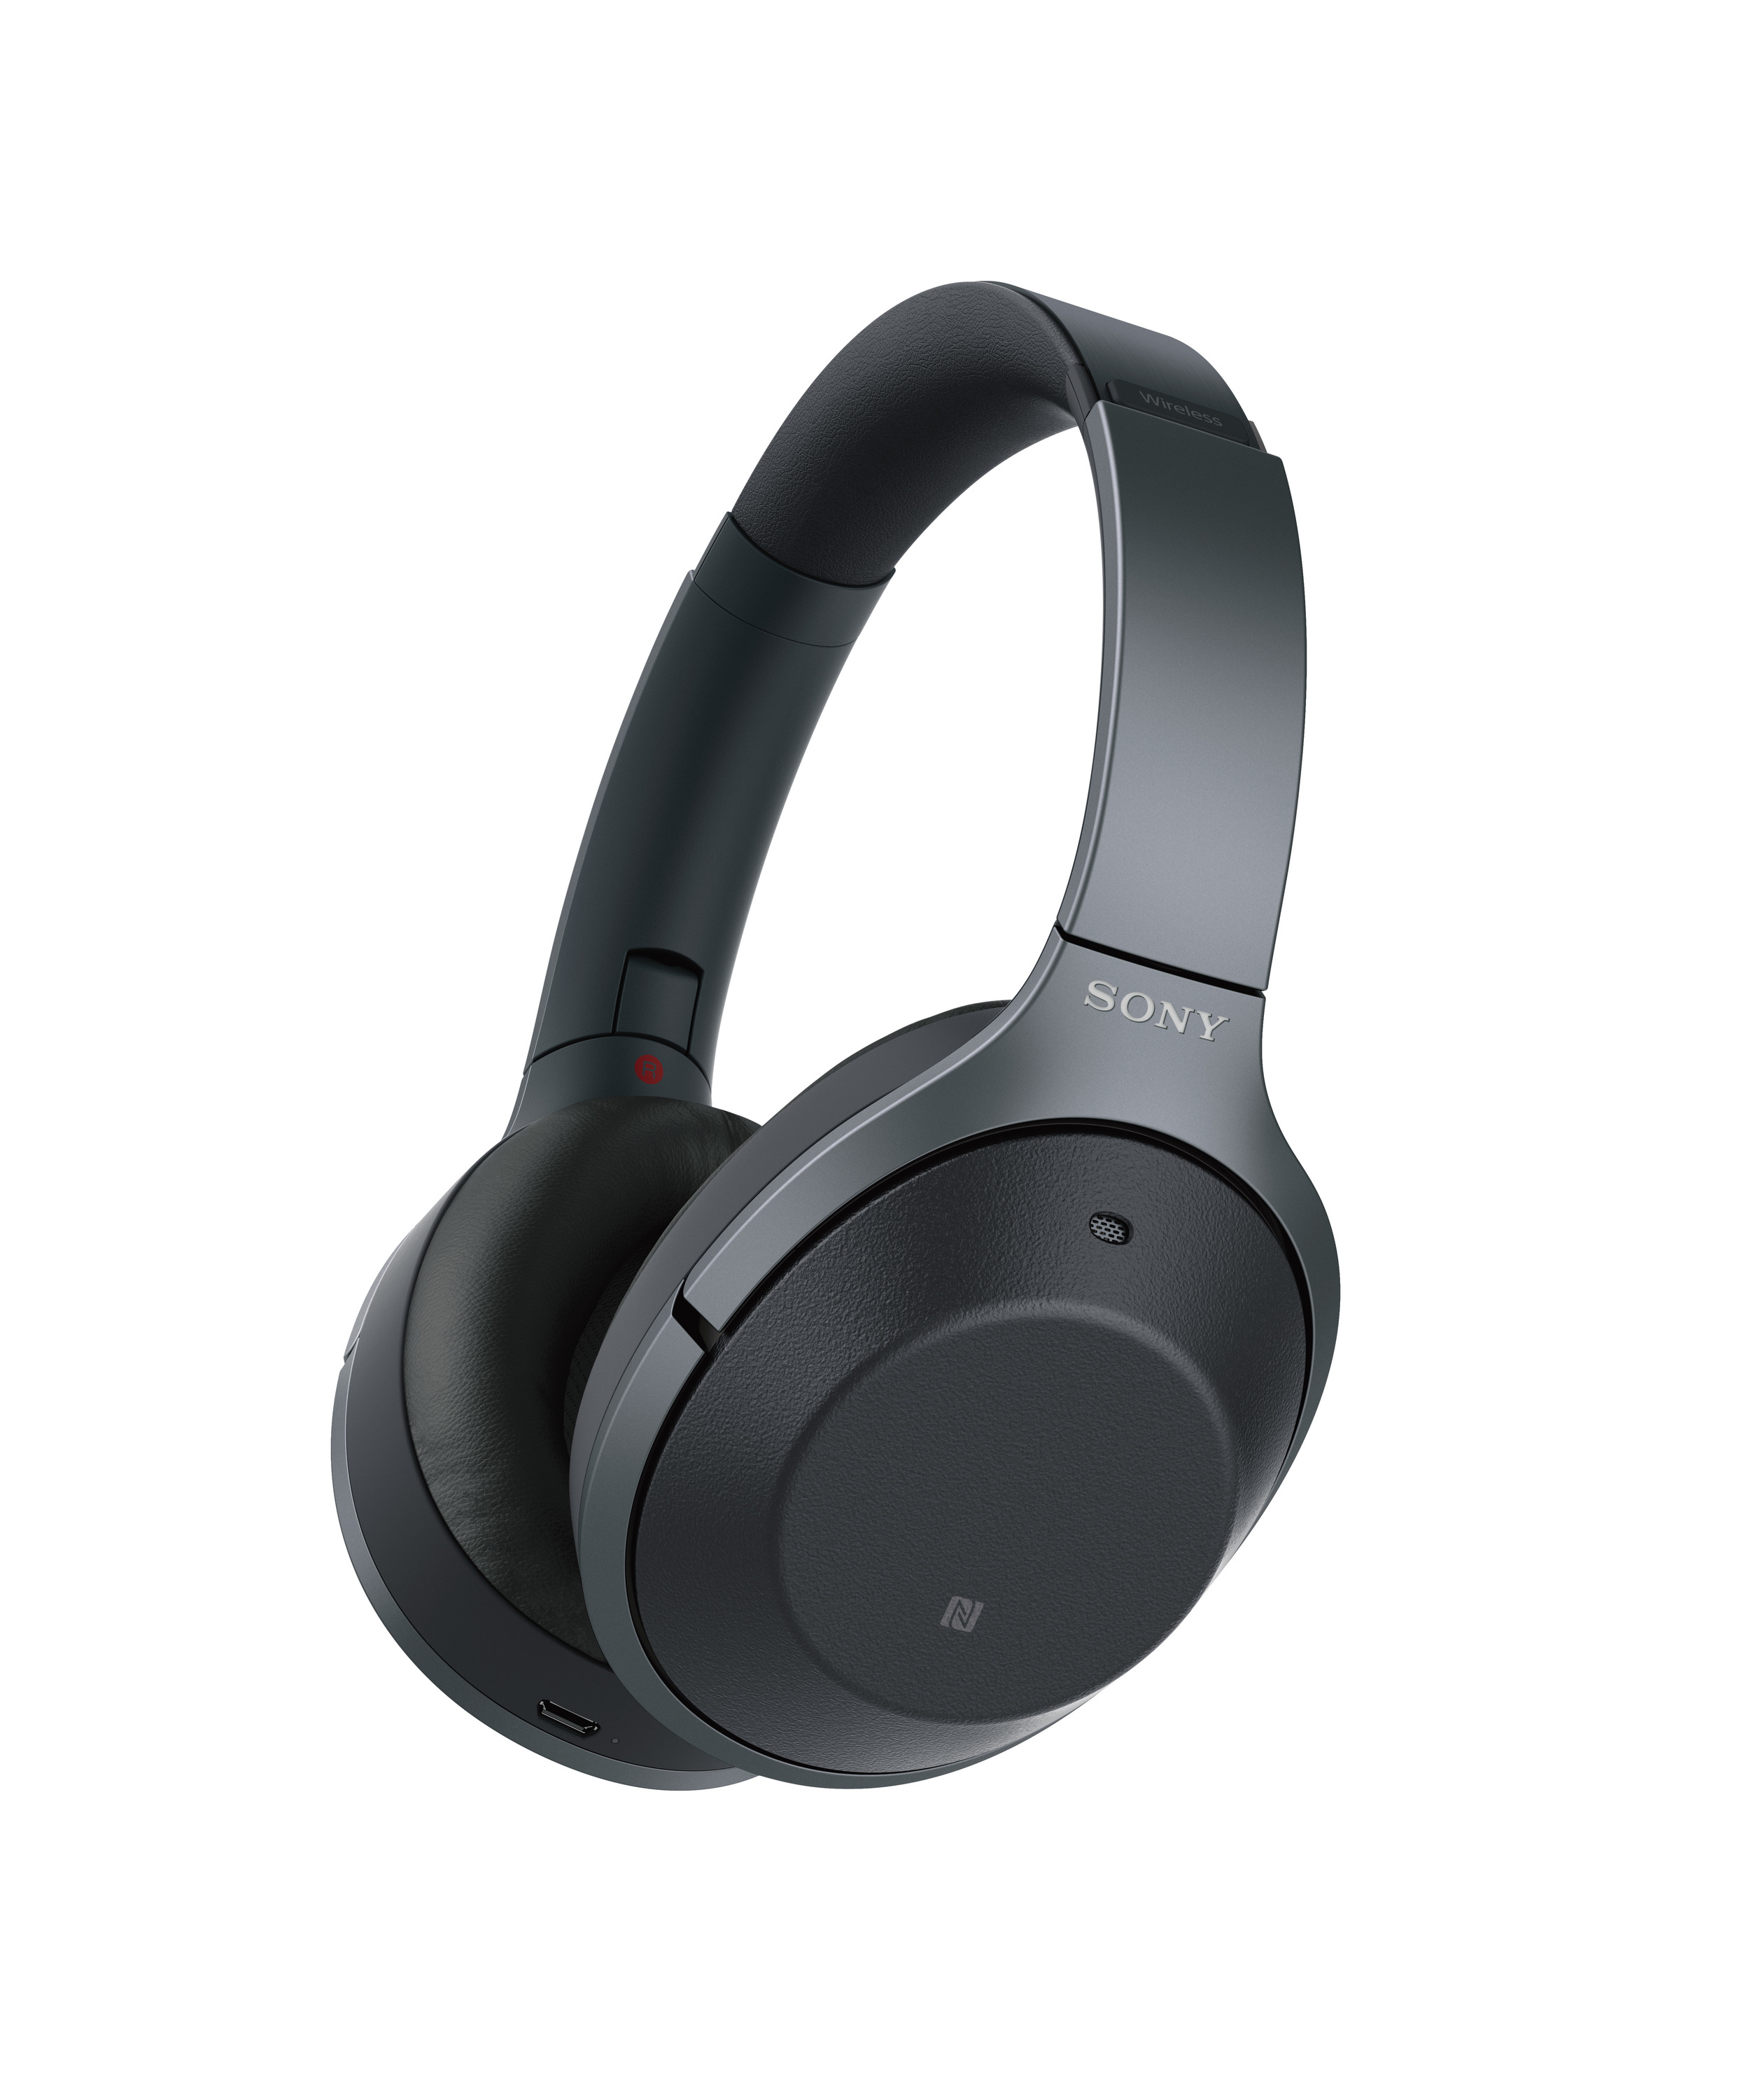 Sony-WH-1000XM2-Wireless-Bluetooth-Noise-Cancelling-Hi-Fi-Headphones